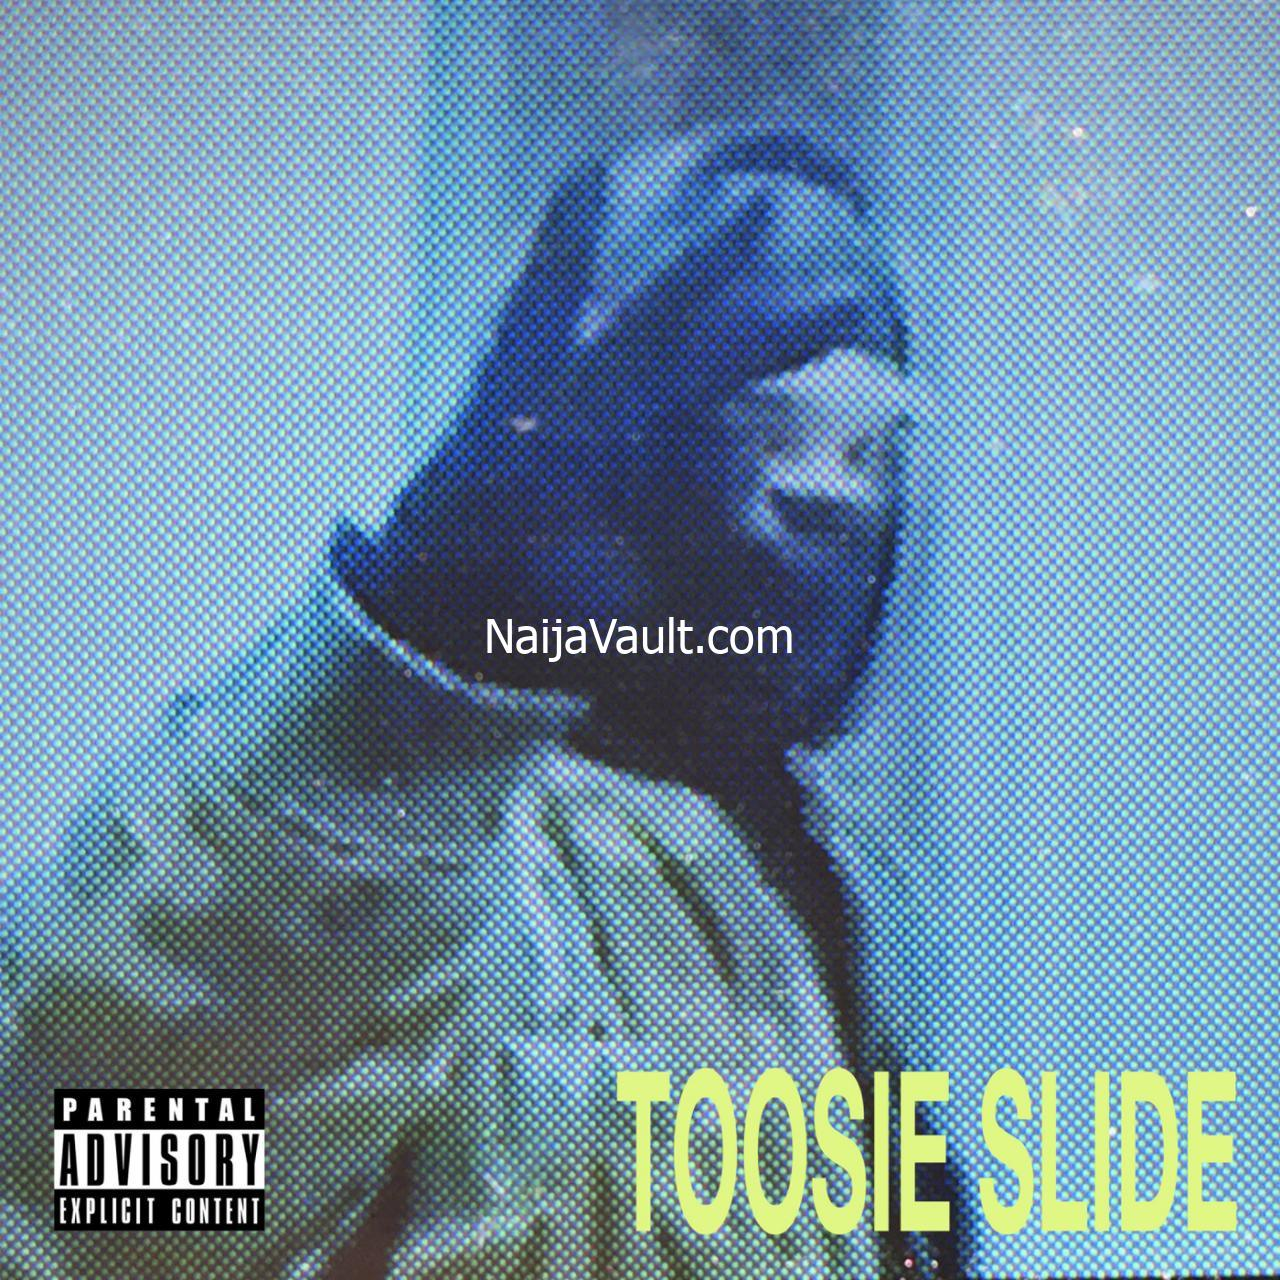 DOWNLOAD MP3: Drake - Toosie Slide + Lyrics » News,Business, Entertainment,Reviews And Tech How Tos